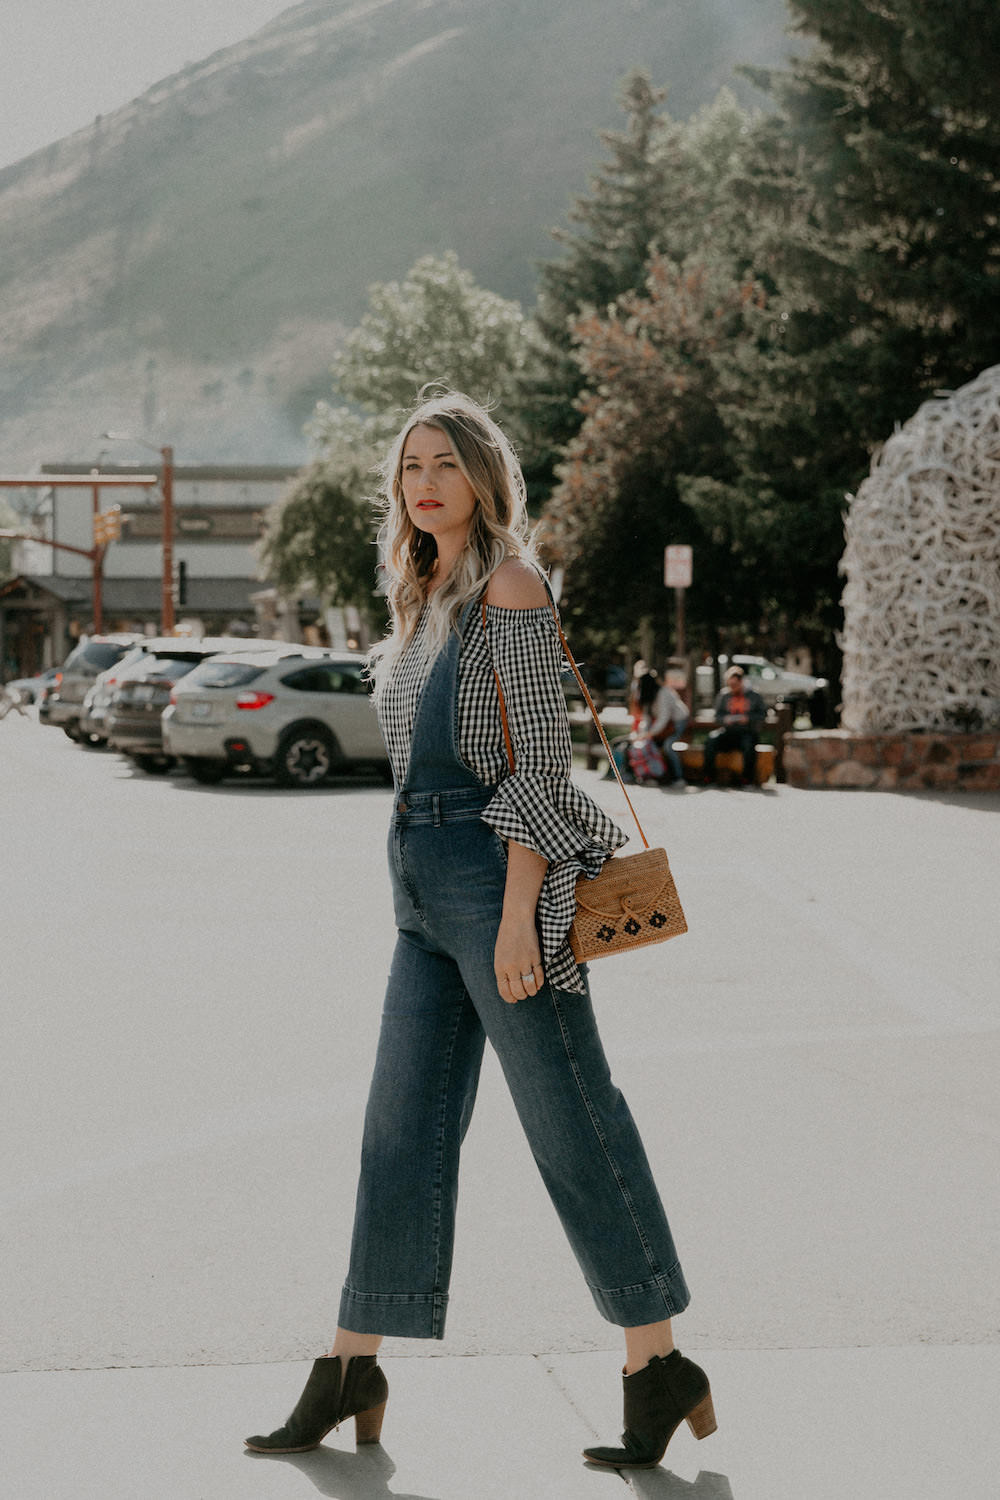 Dash of Darling shares her vacation in Jackson Hole, Wyoming and where to stay and what to do.